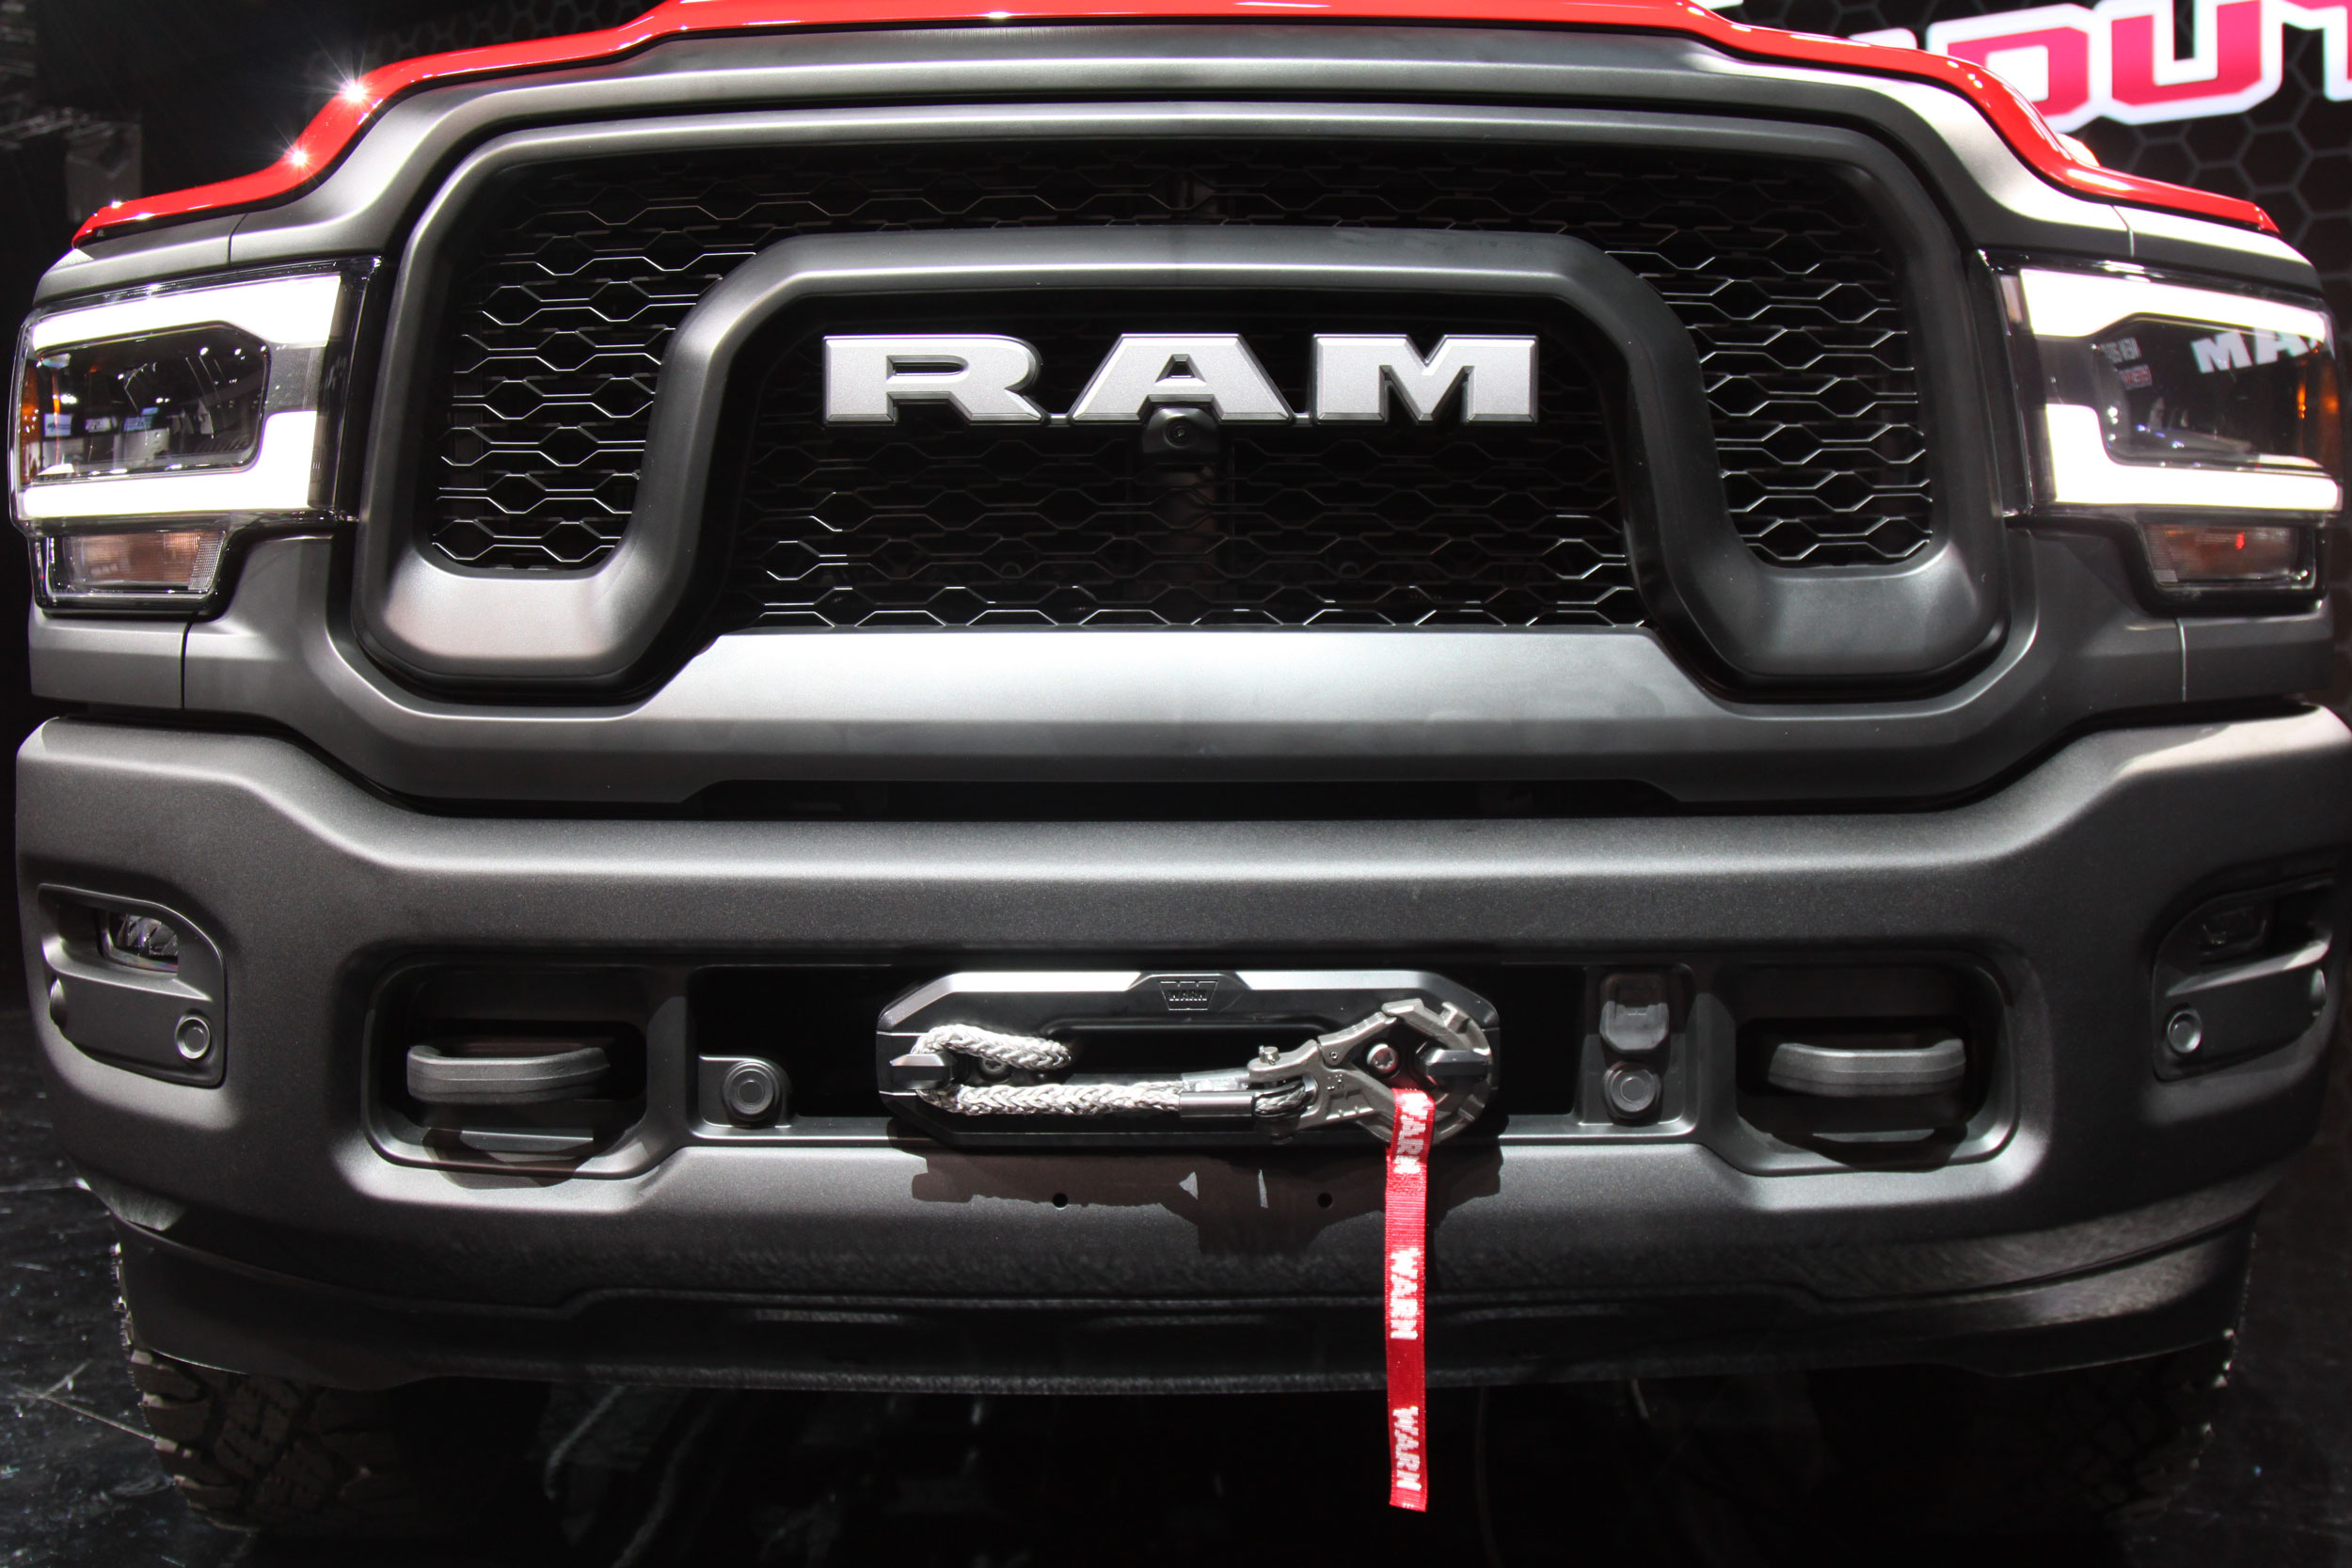 2019 RAM Power Wagon nose